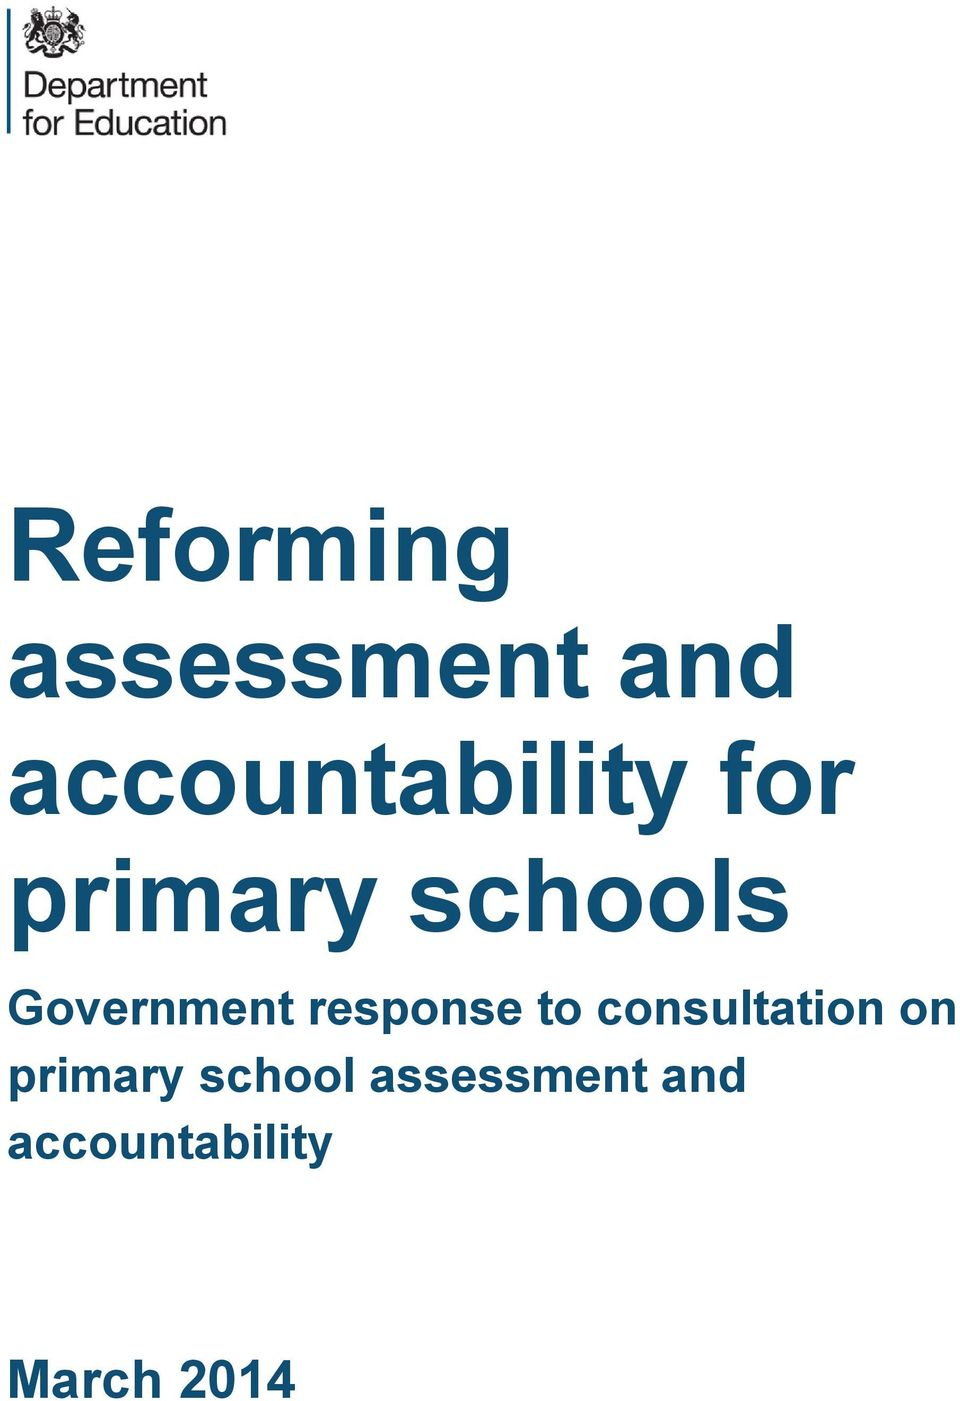 Government response to consultation on